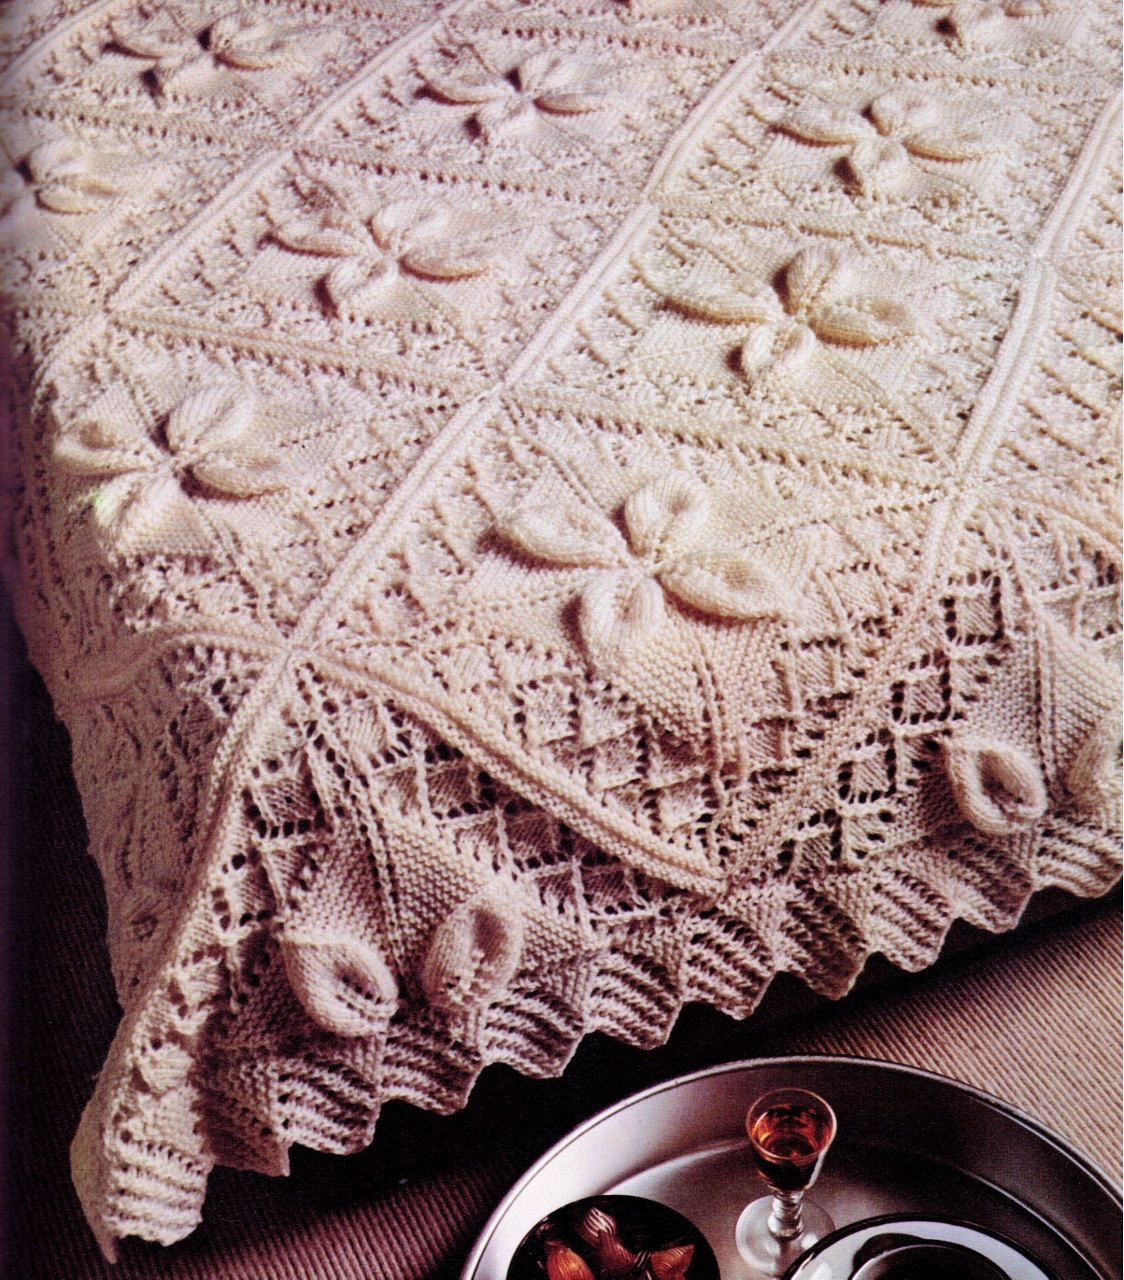 Vintage 3d flower pattern cable bedspread blanket knitted retro vintage 3d flower pattern cable bedspread blanket knitted retro lifestyle size 130 x240 cms 4 ply bankloansurffo Choice Image